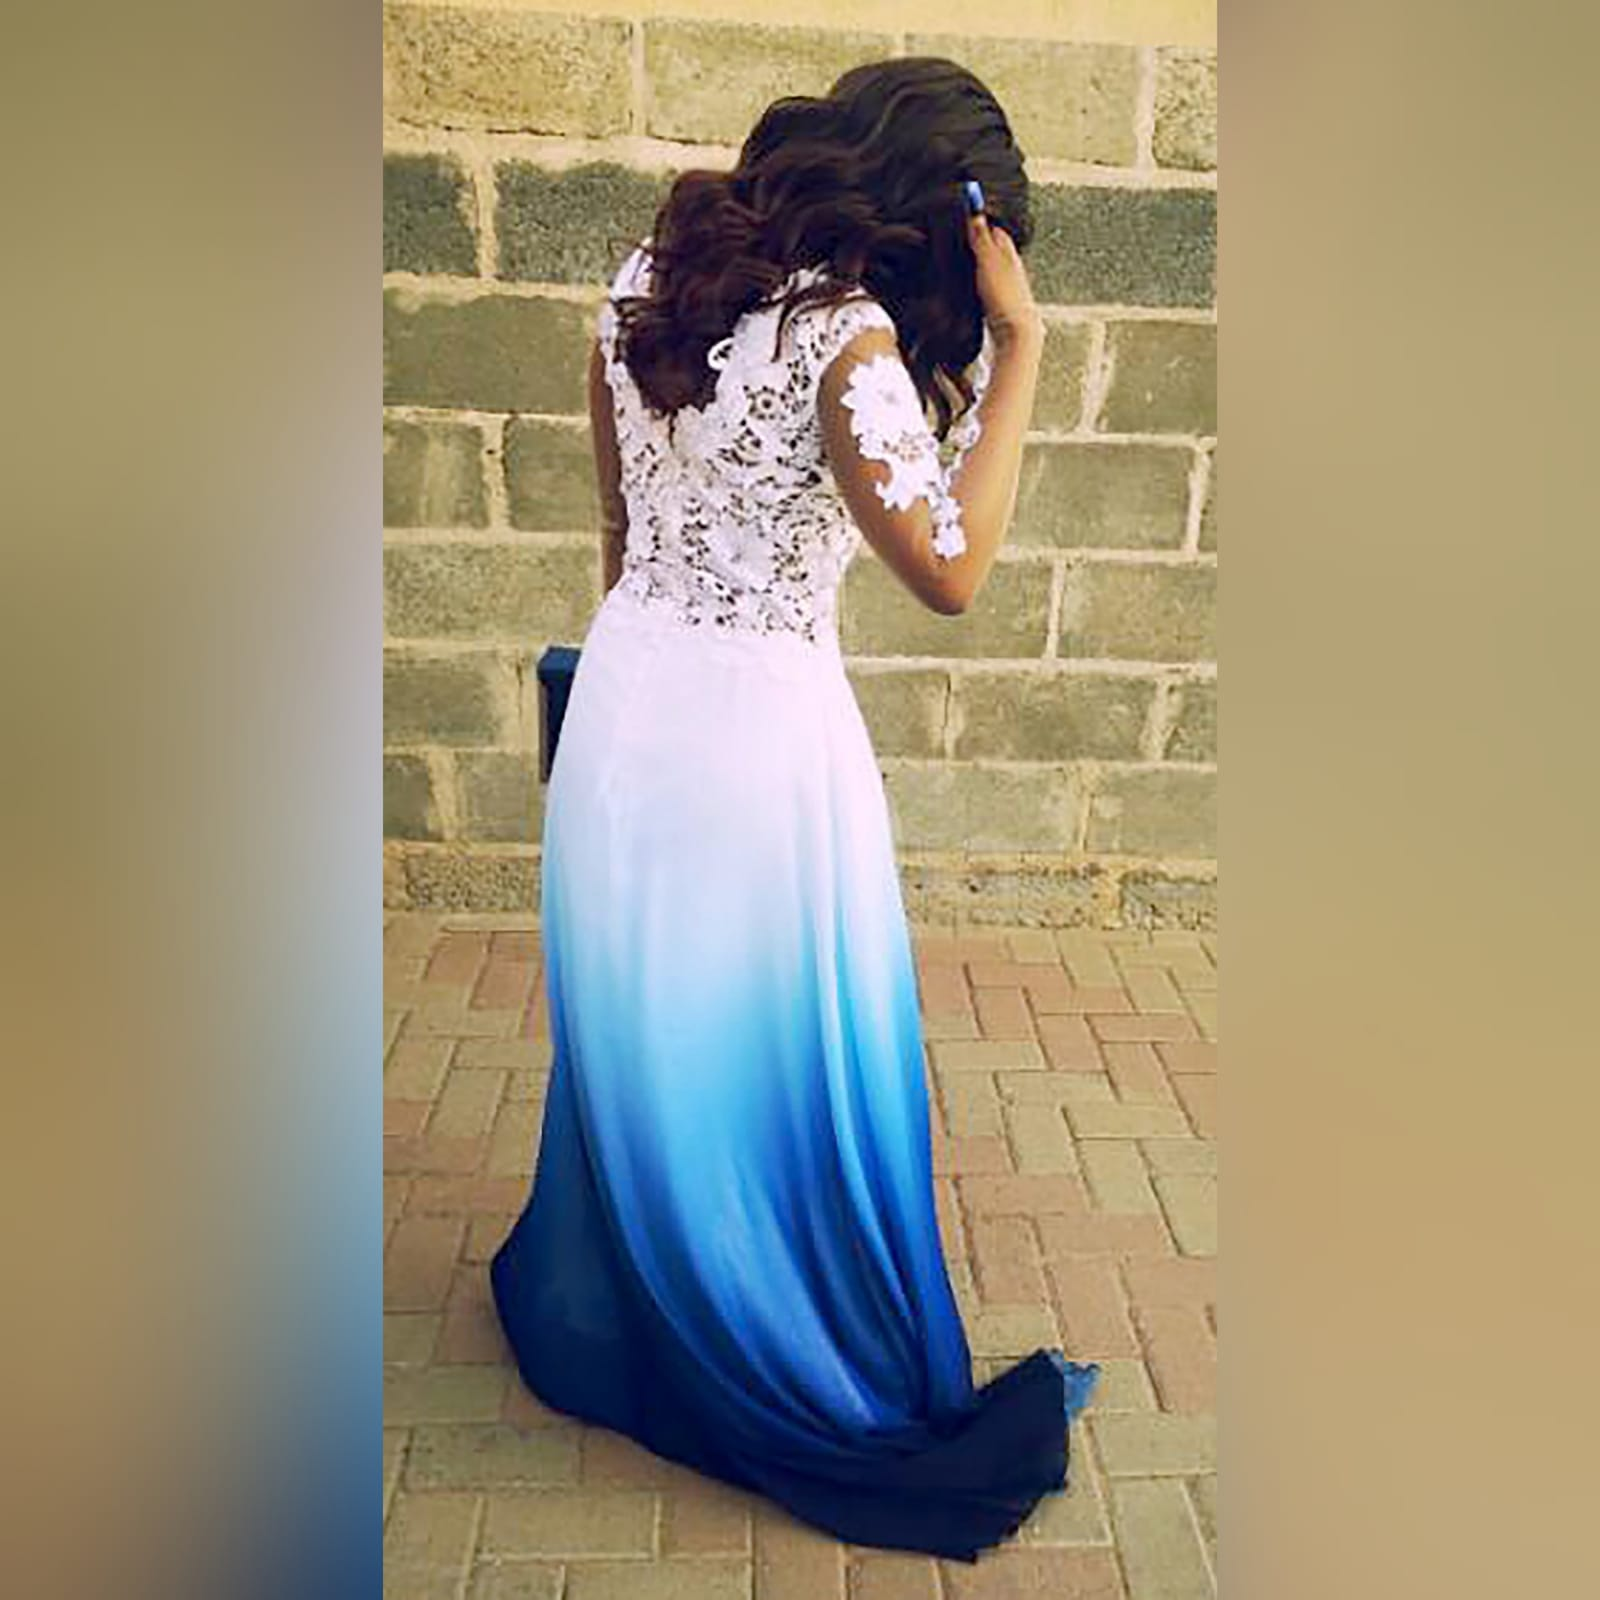 Gorgeous blue and white ombre flowy ceremony dress 2 a gorgeous blue and white ombre flowy ceremony dress created for a prom night. With a classy white bodice with elegant illusion lace sleeves. With a slit and a train